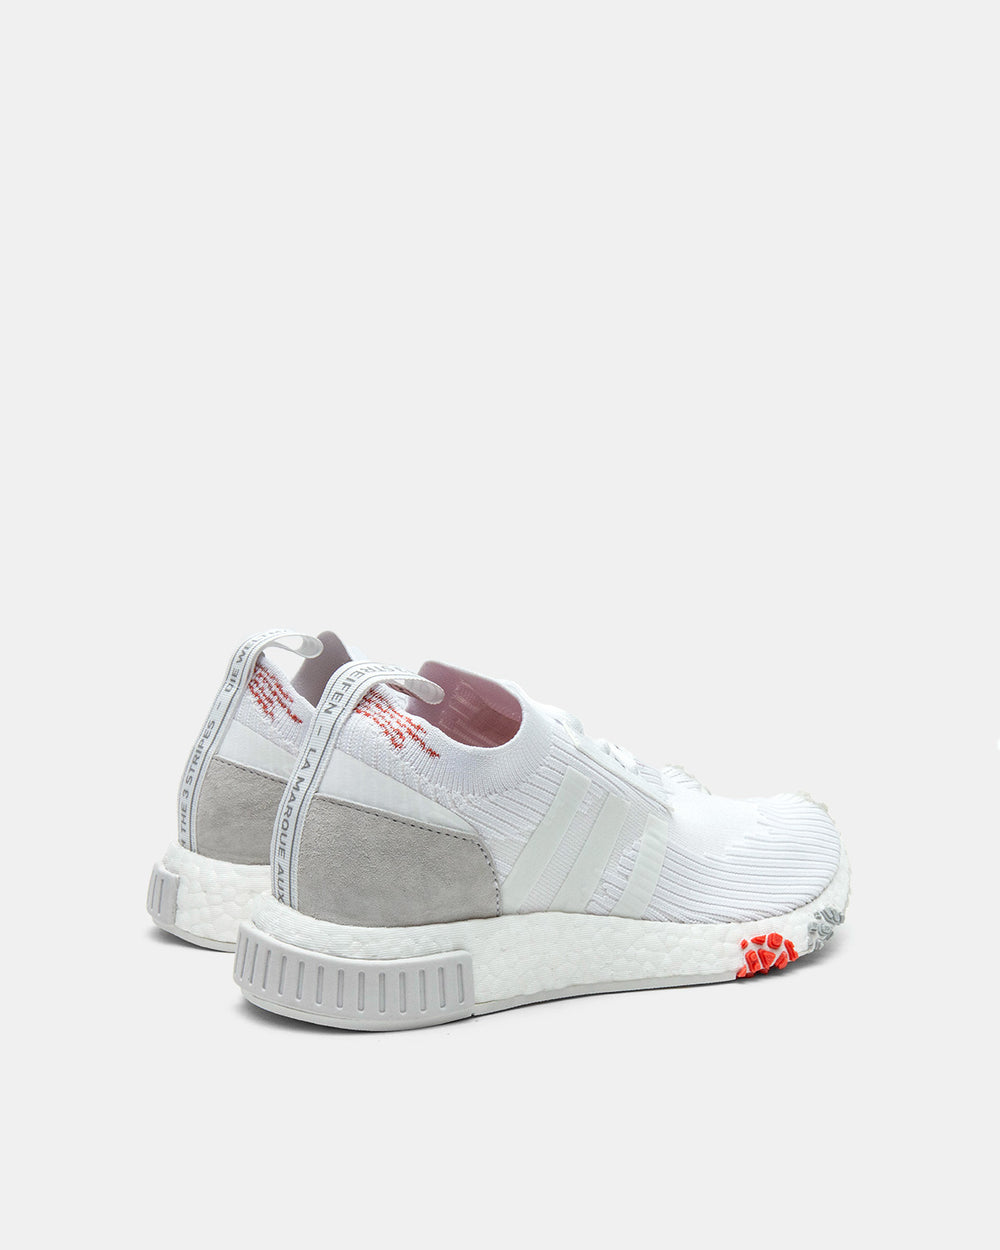 adidas - Women's NMD_Racer Primeknit (Cloud White | Trace Scarlet)